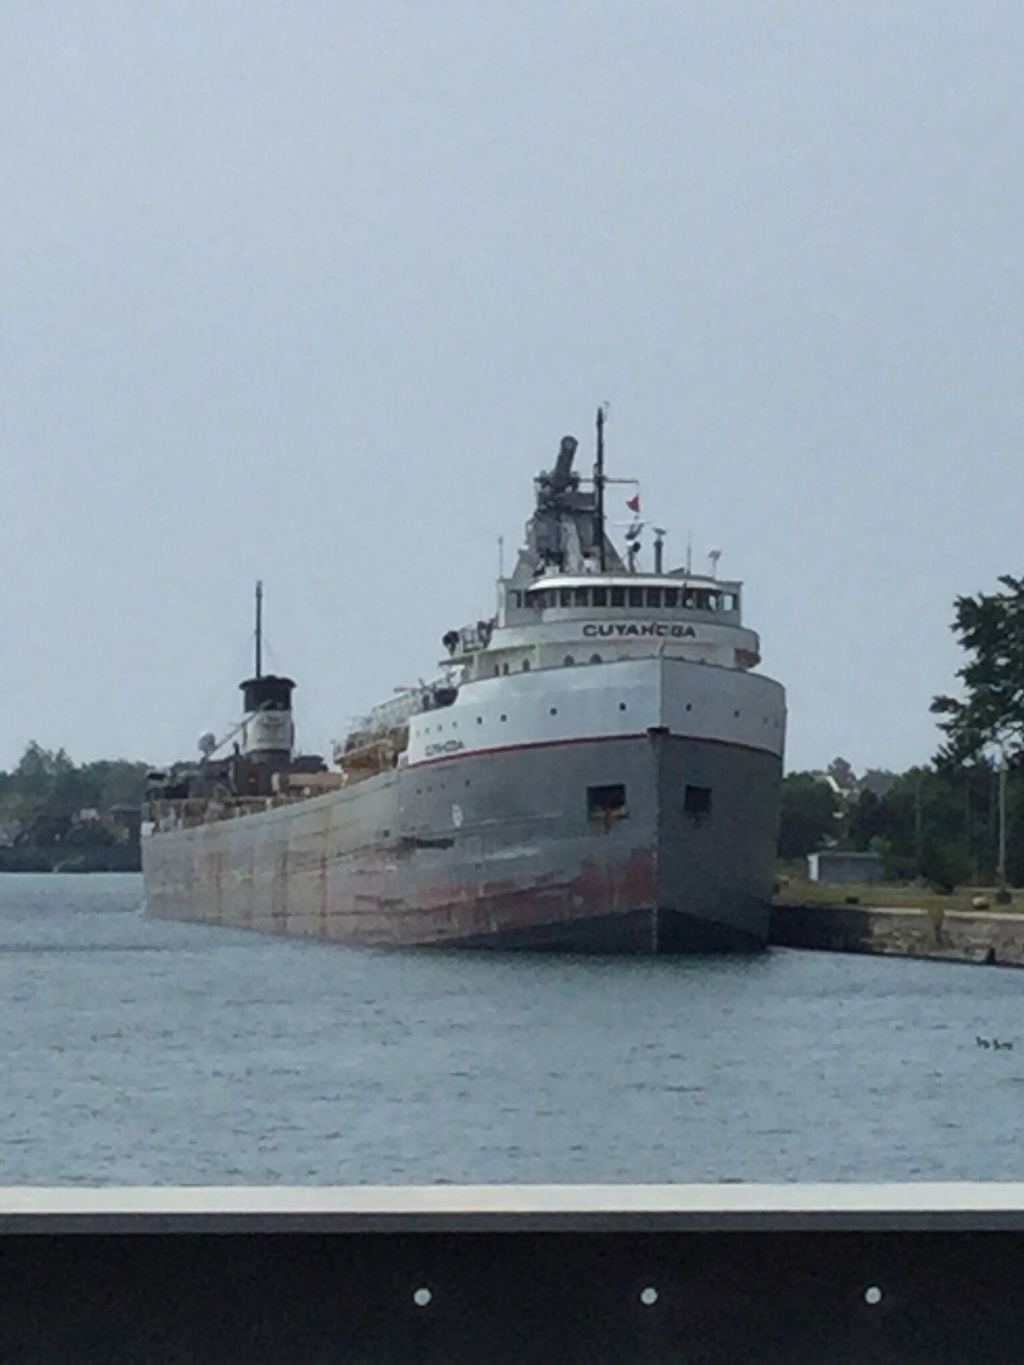 Cuyahoga picture